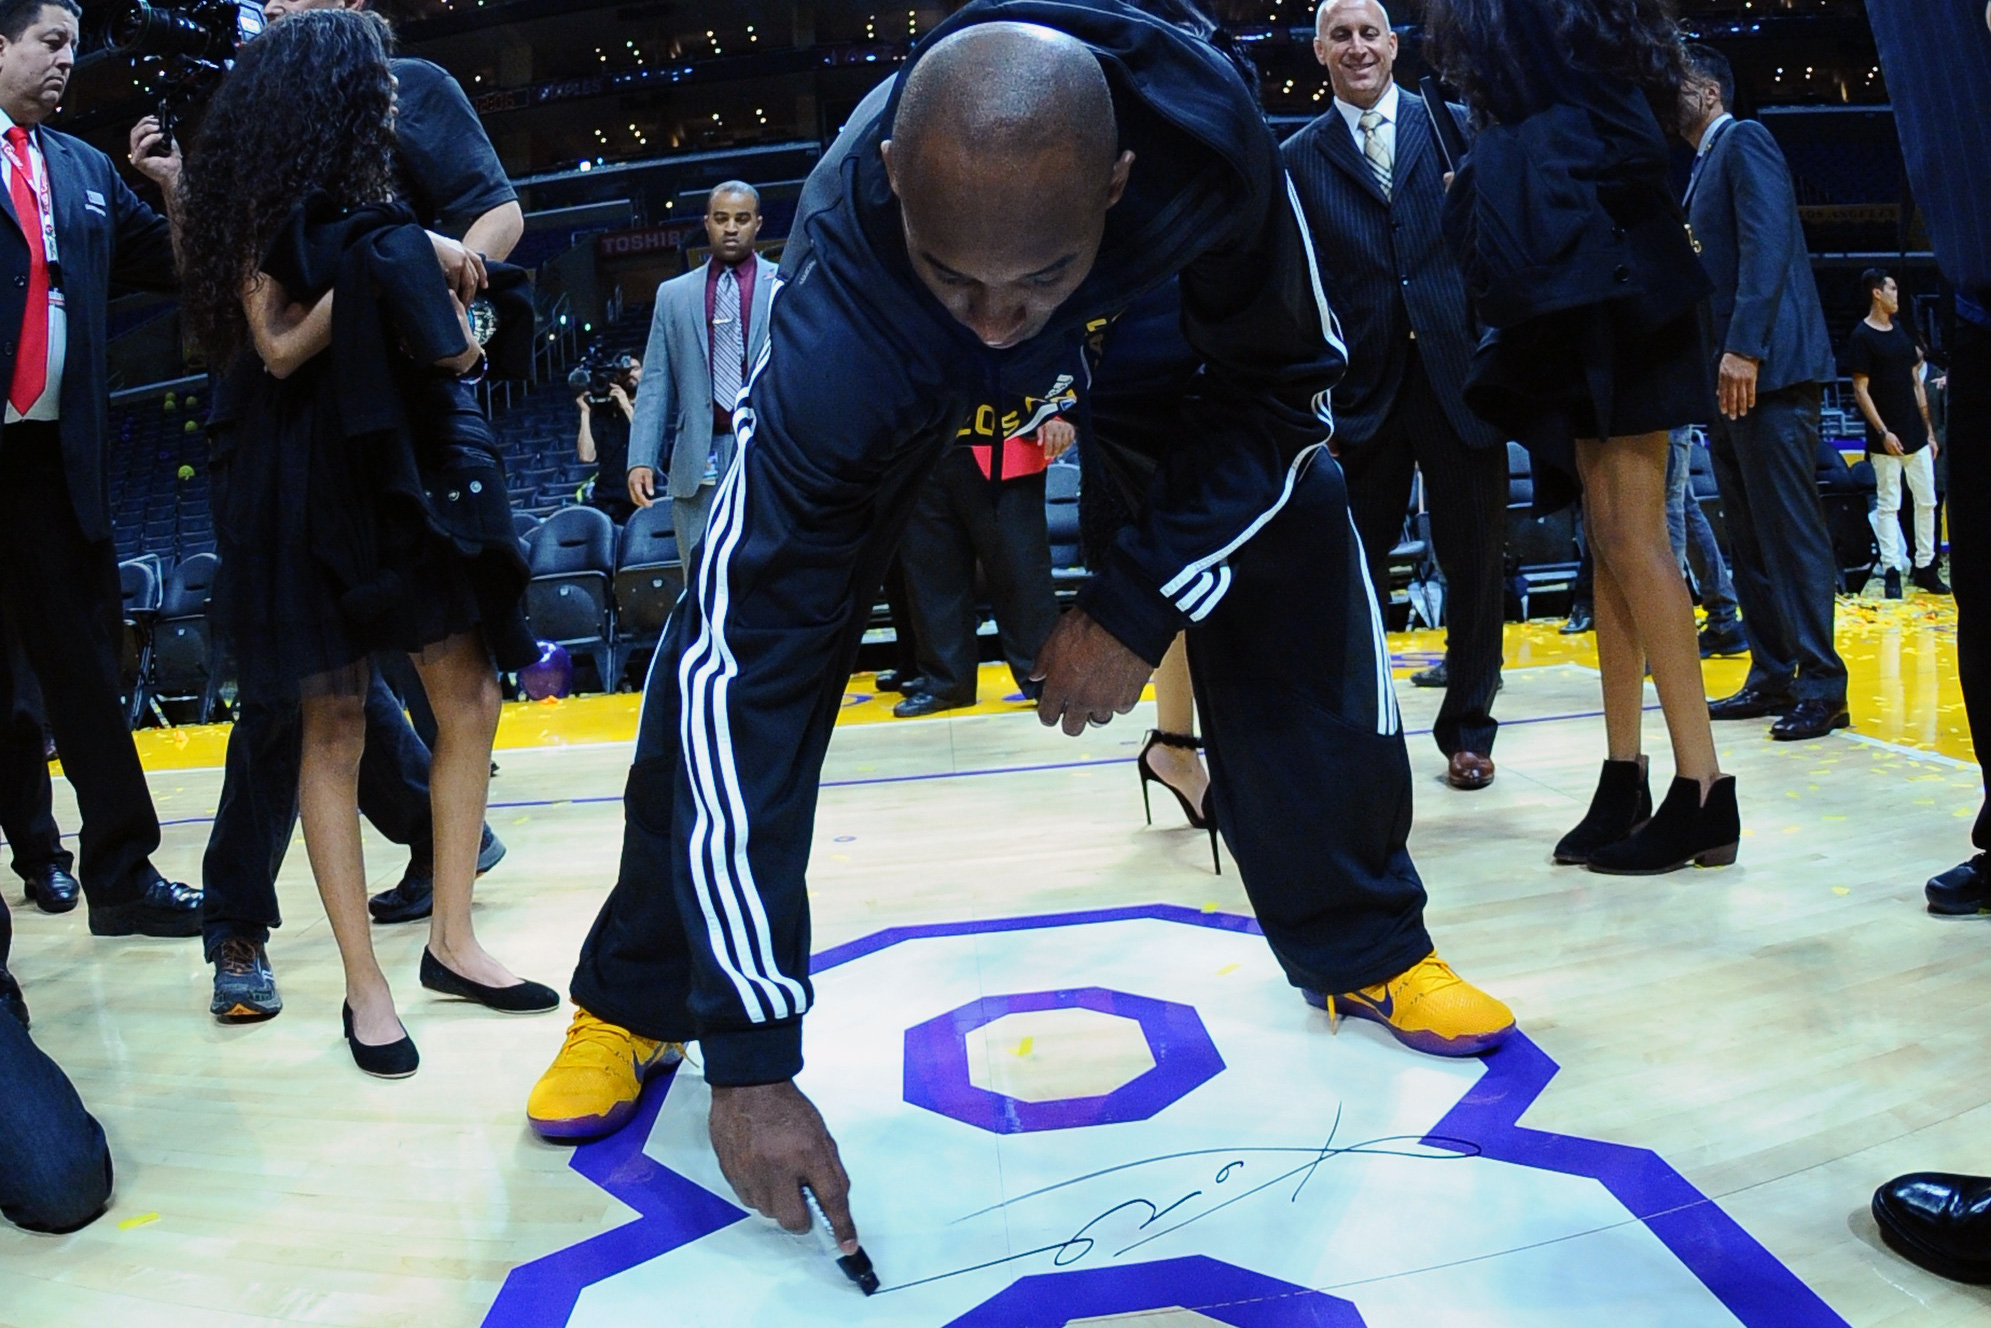 Kobe Bryant #24 of the Los Angeles Lakers autographs the floor after the game against the Utah Jazz at STAPLES Center on April 13, 2016 in Los Angeles, California